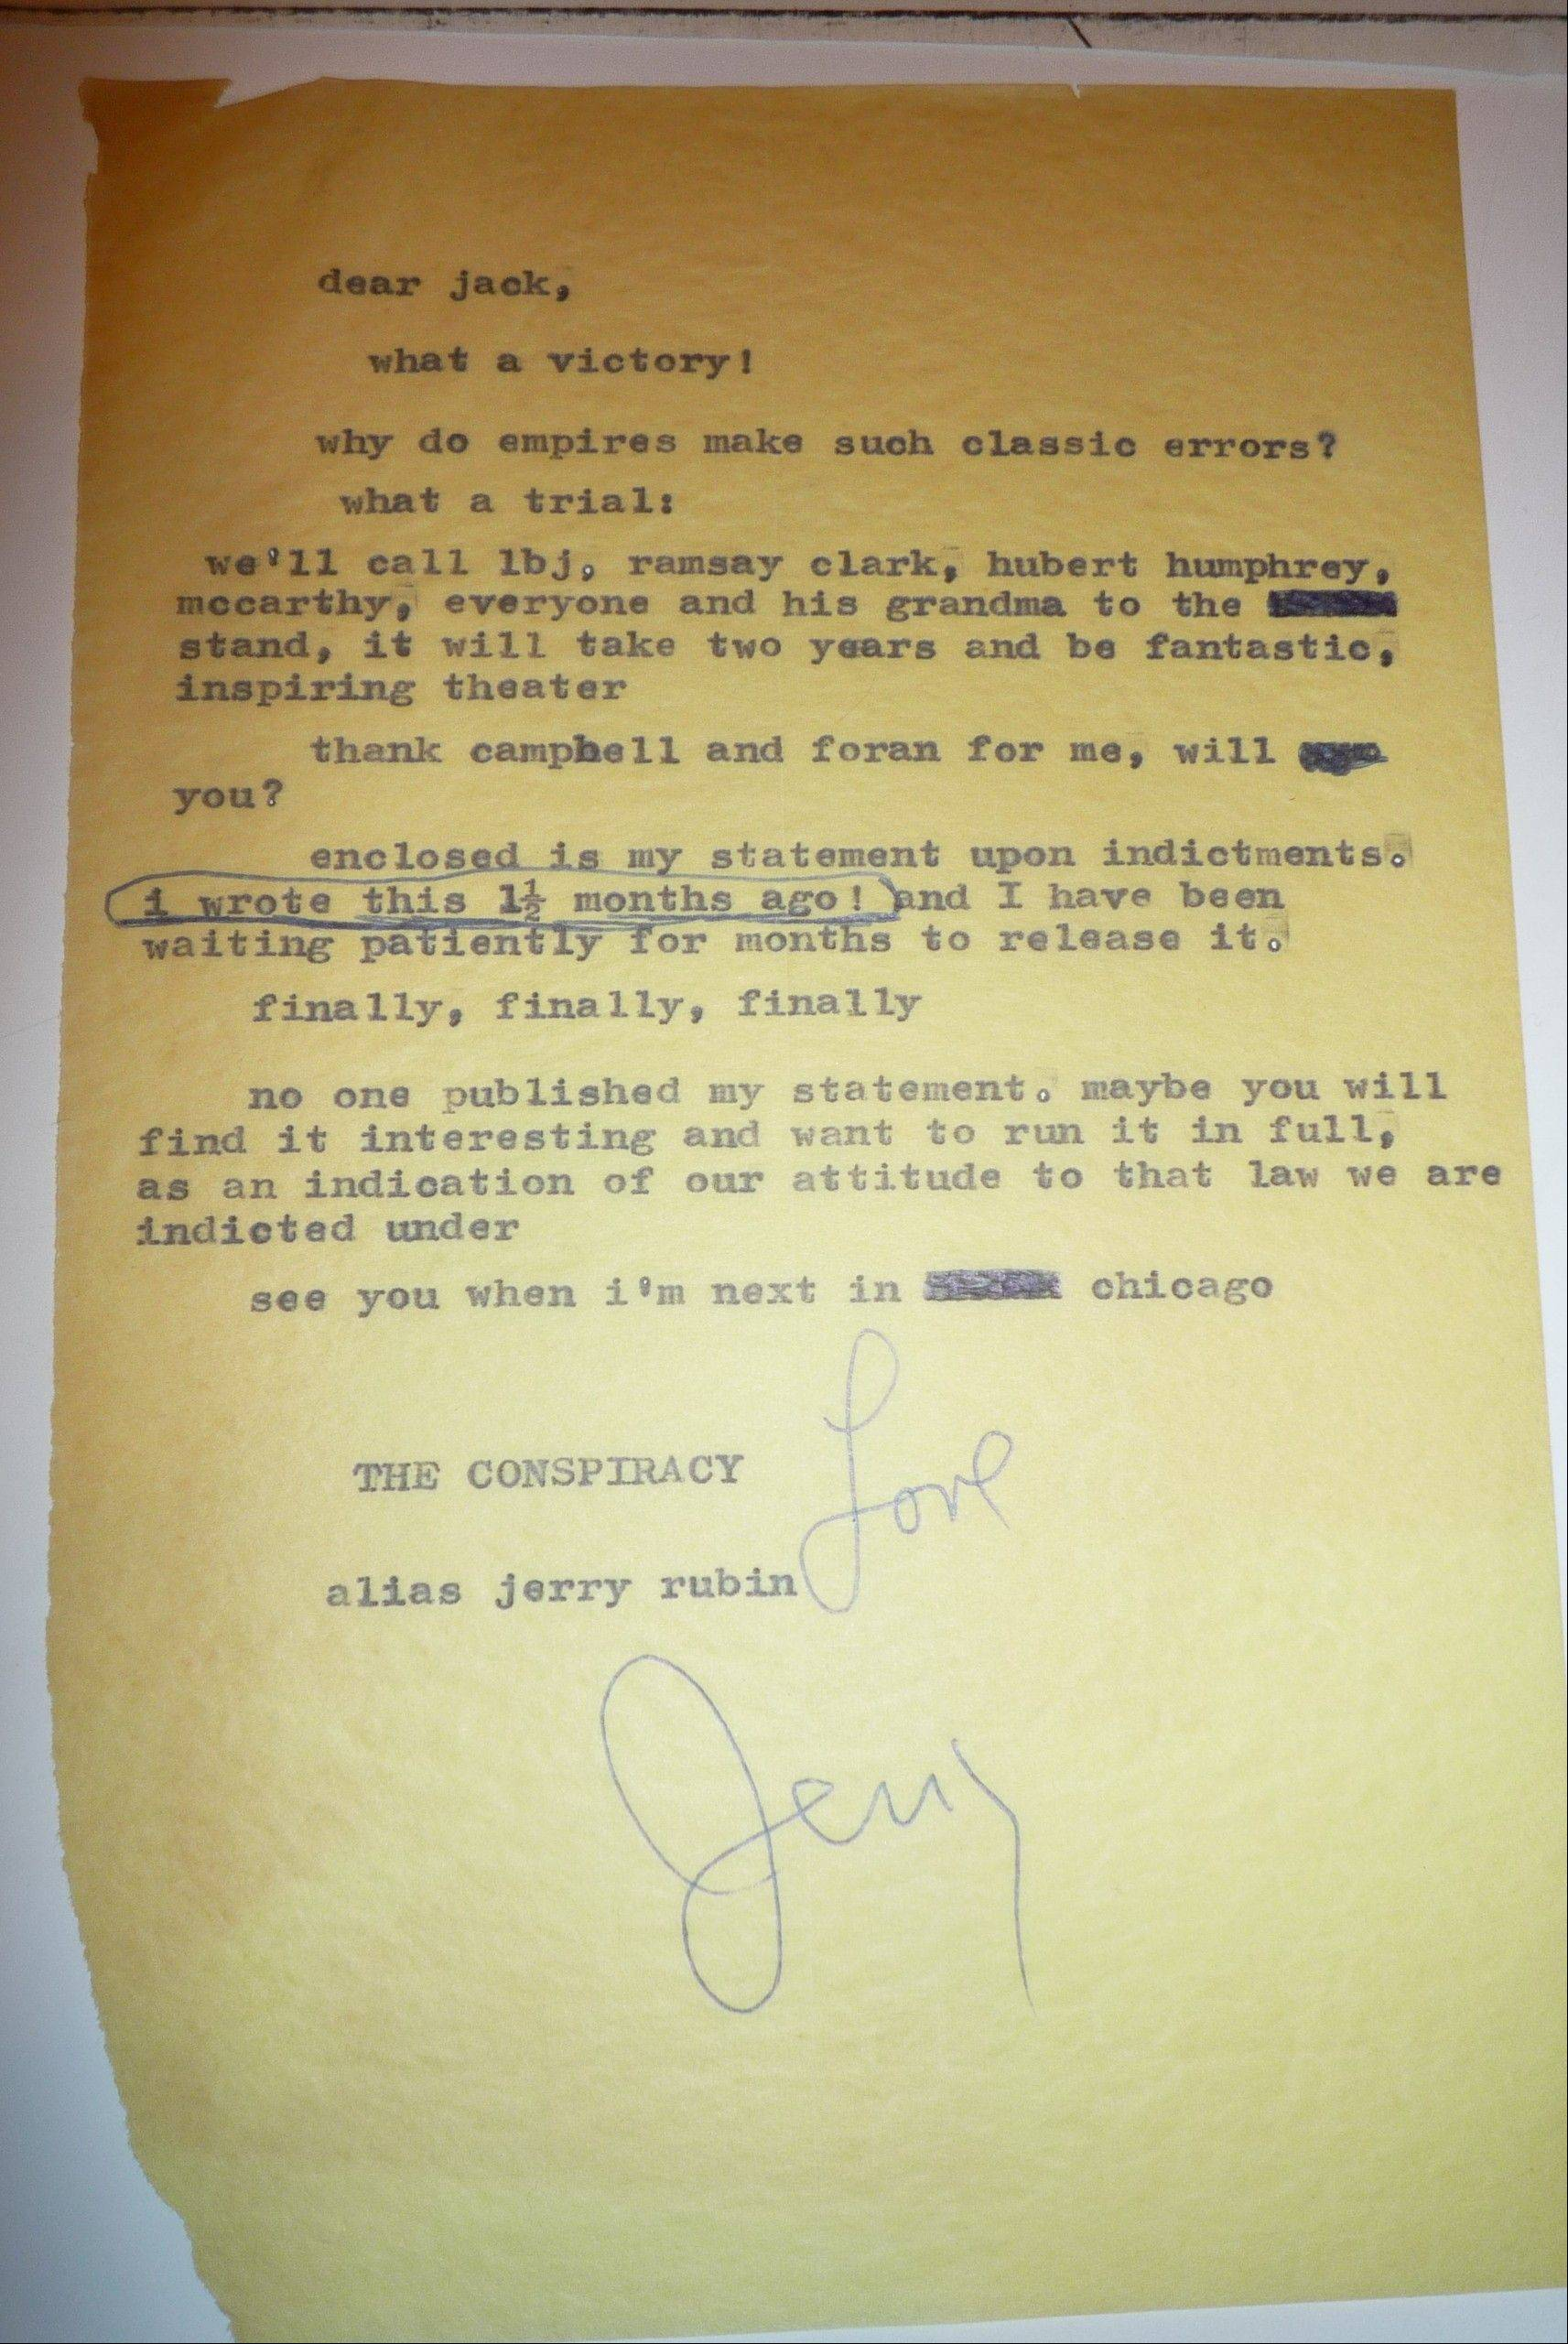 While columnist Jack Mabley received this fan letter from Yippie leader Jerry Rubin, Mabley also received praise from the Chicago police for his coverage of the 1968 Democratic Convention.